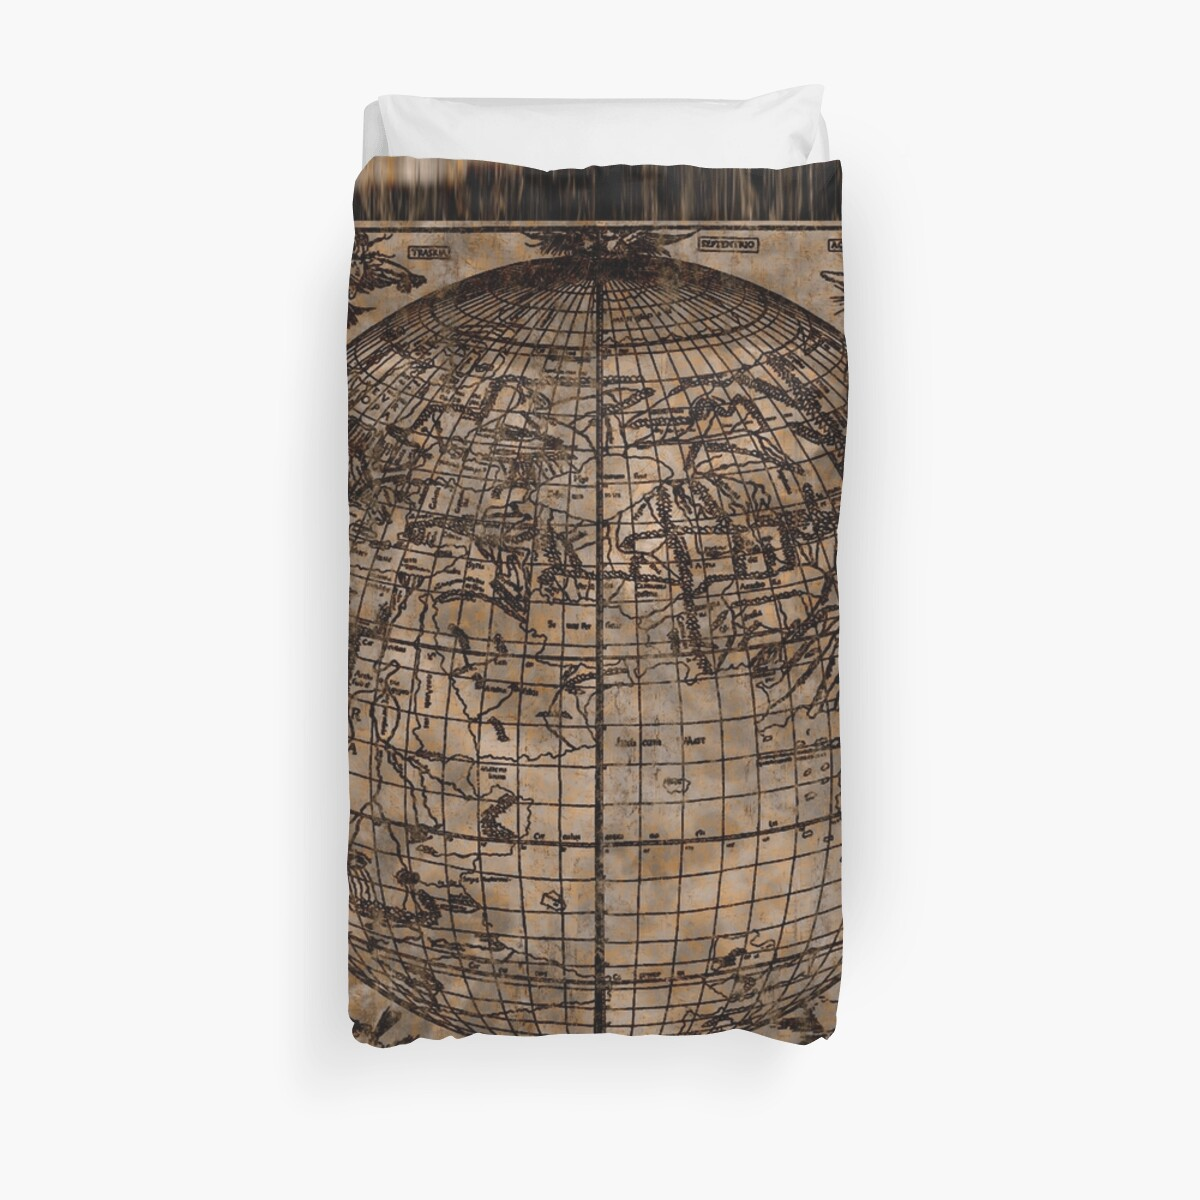 Vintage old world map duvet covers by natureprints redbubble vintage old world map by natureprints gumiabroncs Image collections